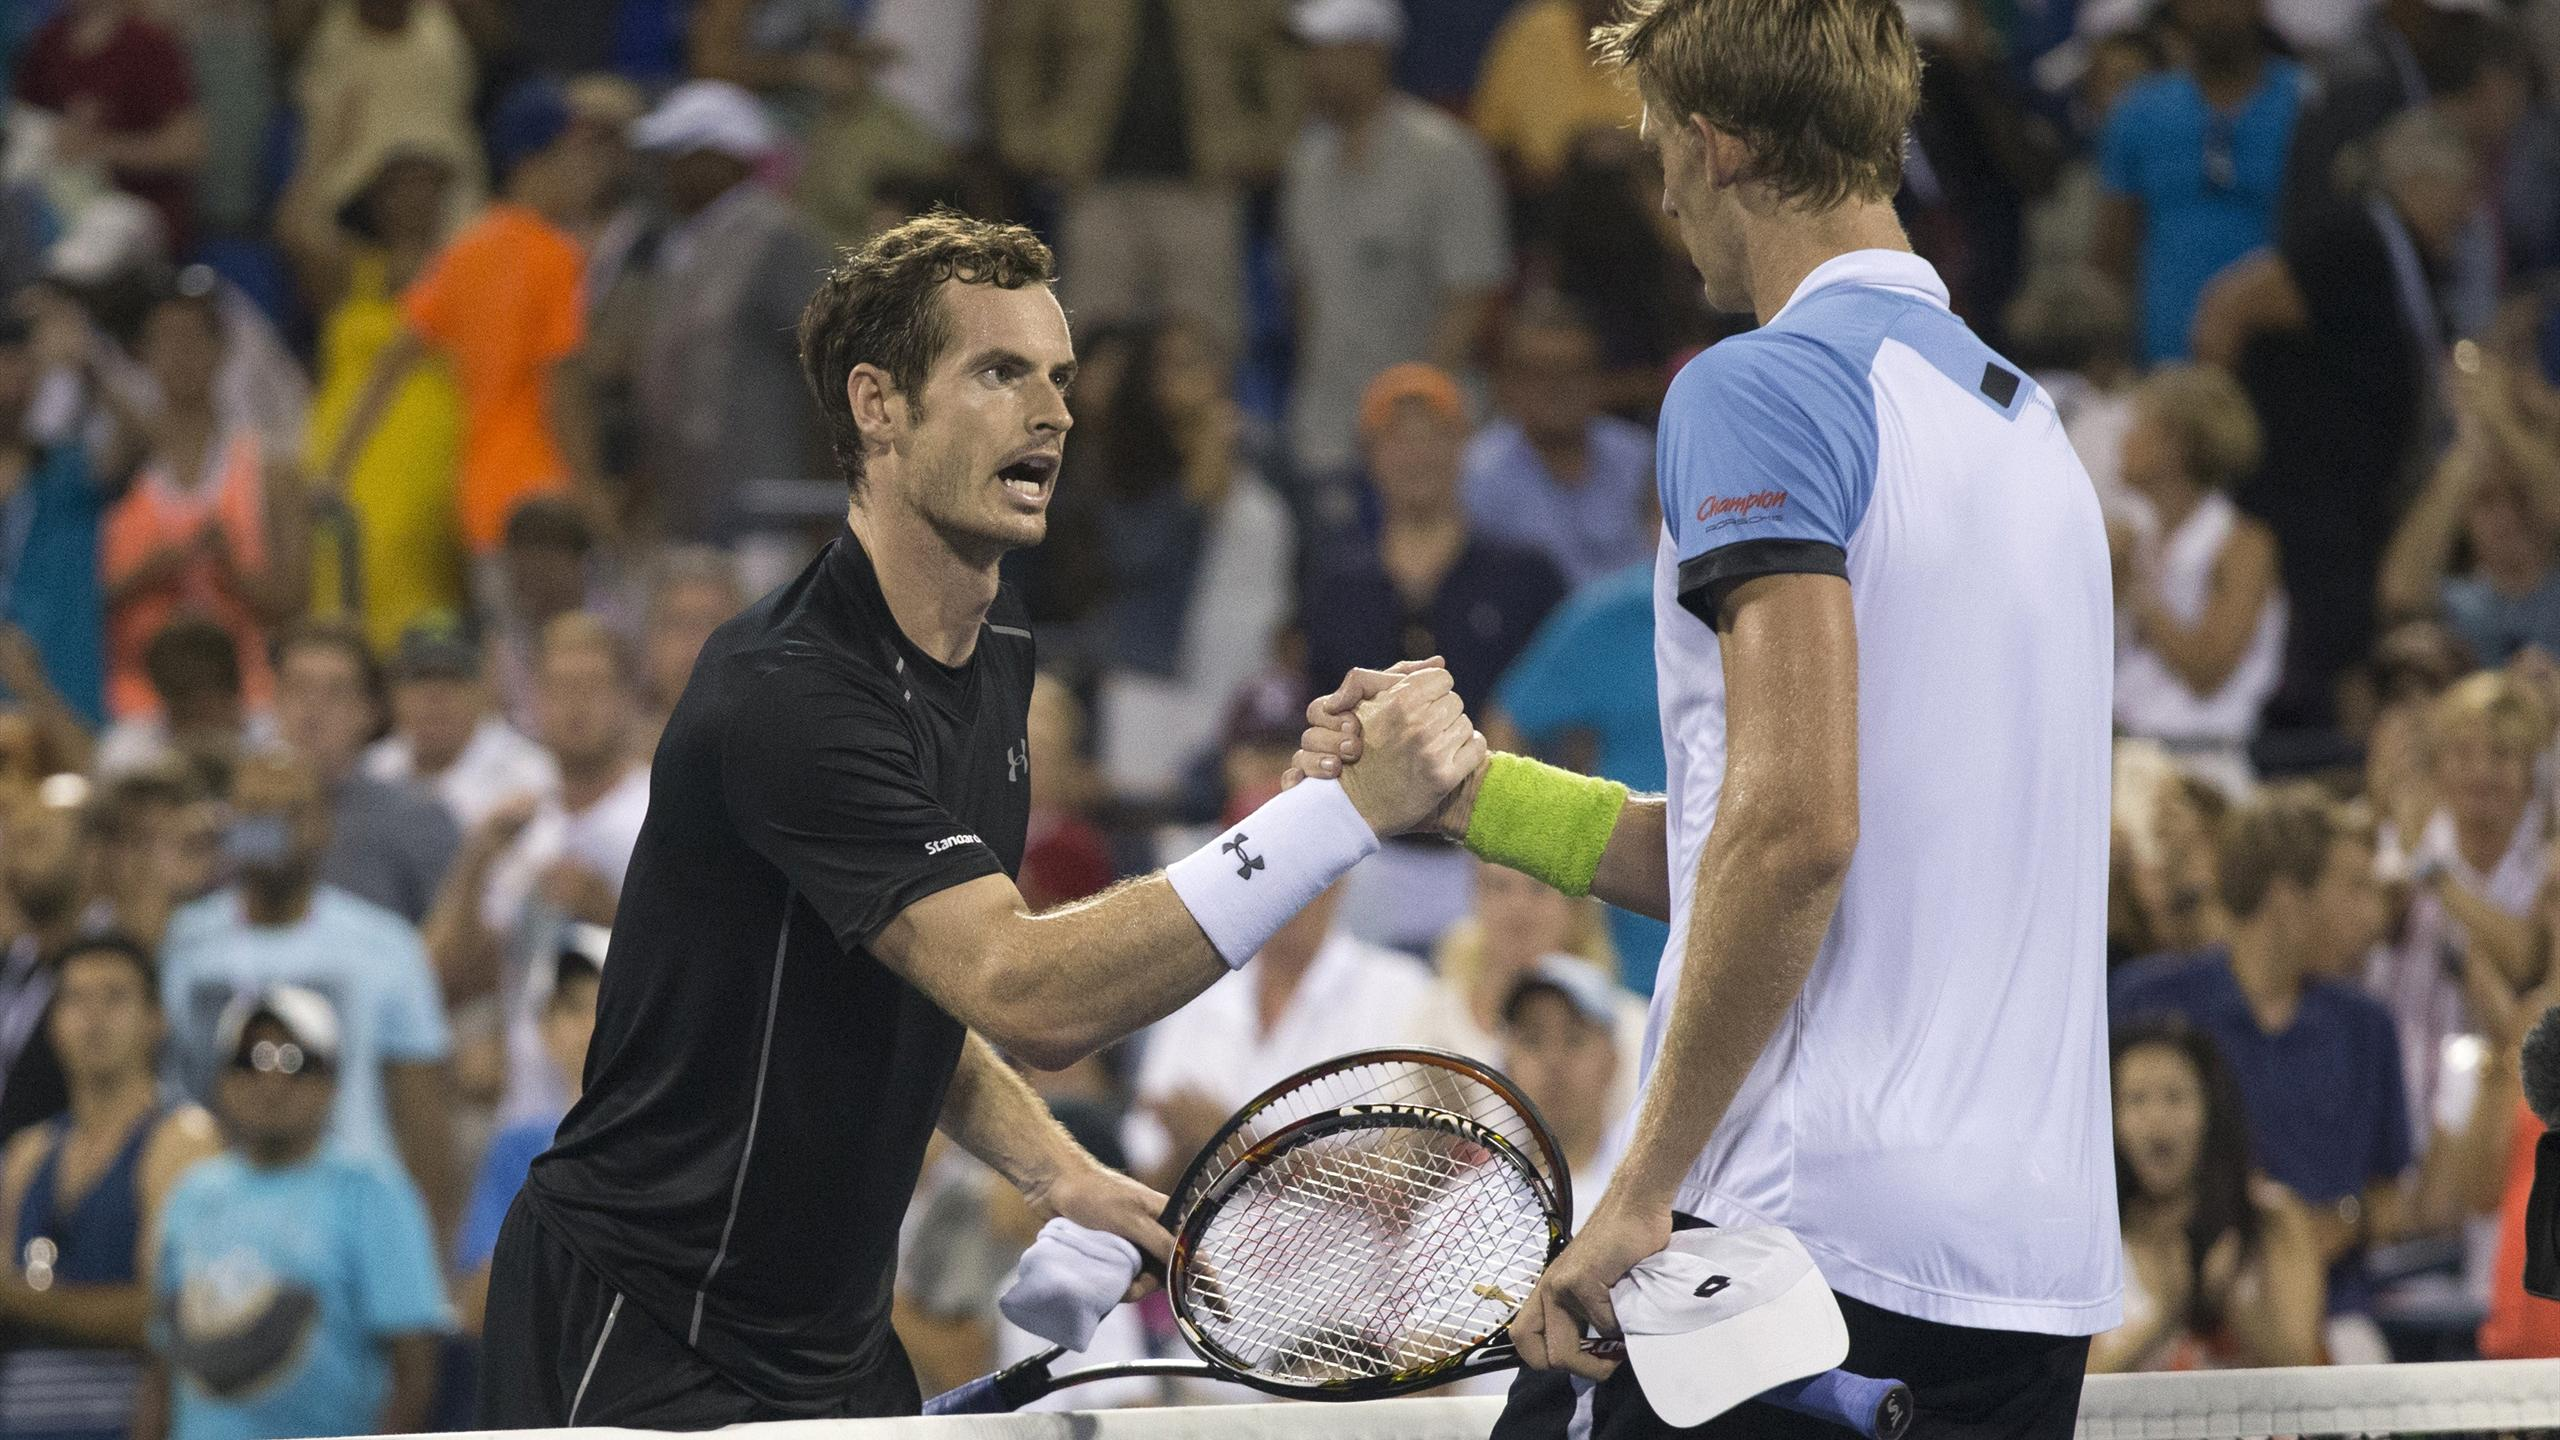 Andy Murray of Britain (L) greets Kevin Anderson of South Africa at the net after Anderson won their fourth round match at the U.S. Open Championships tennis tournament in New York